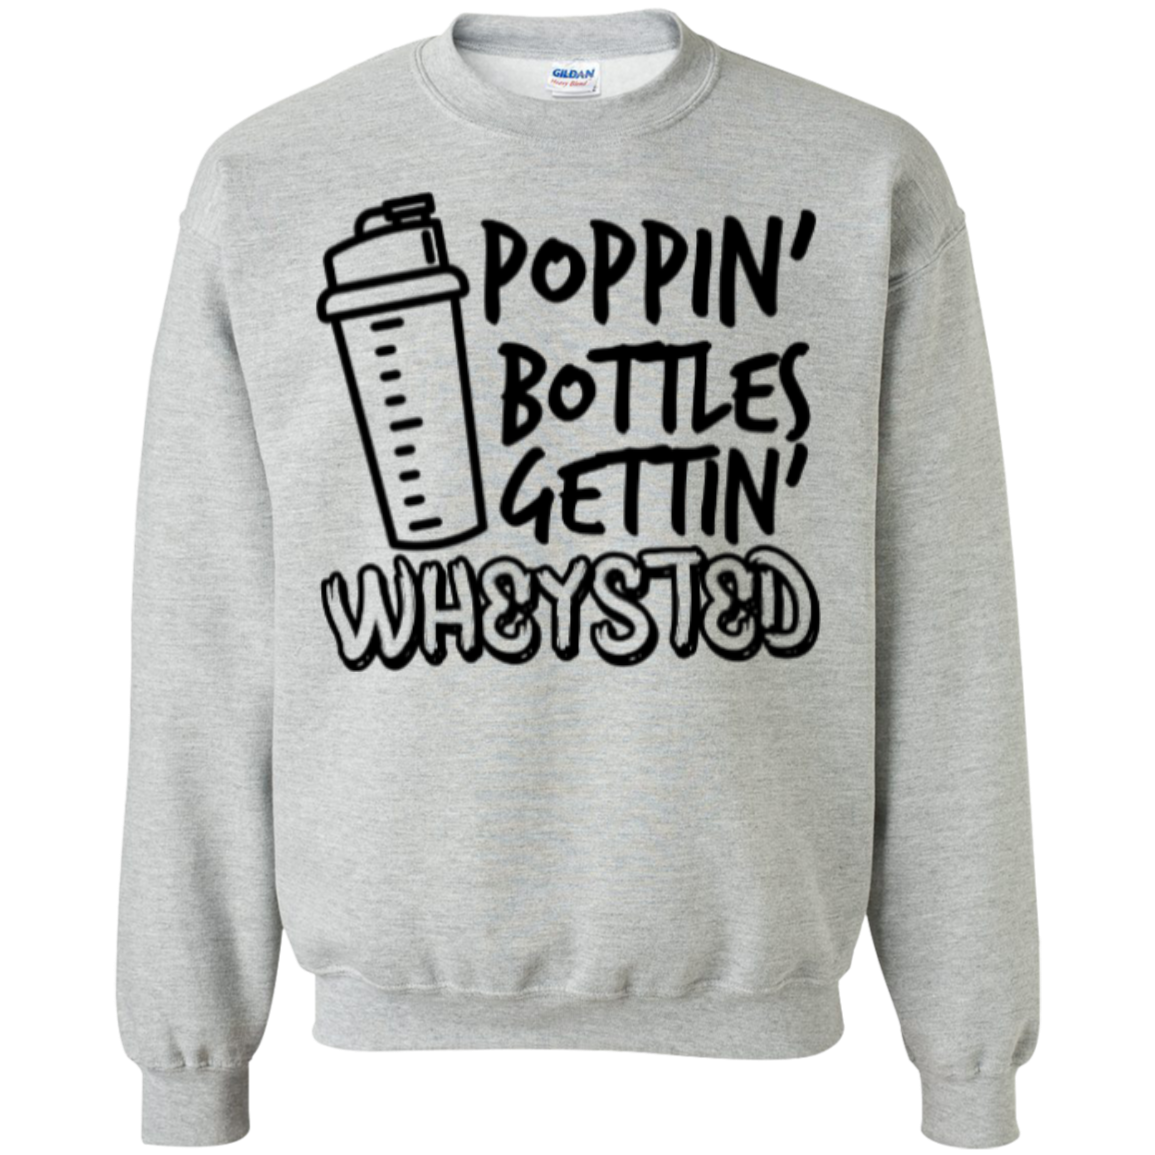 Gettin' Wheysted Unisex Crewneck Sweatshirt